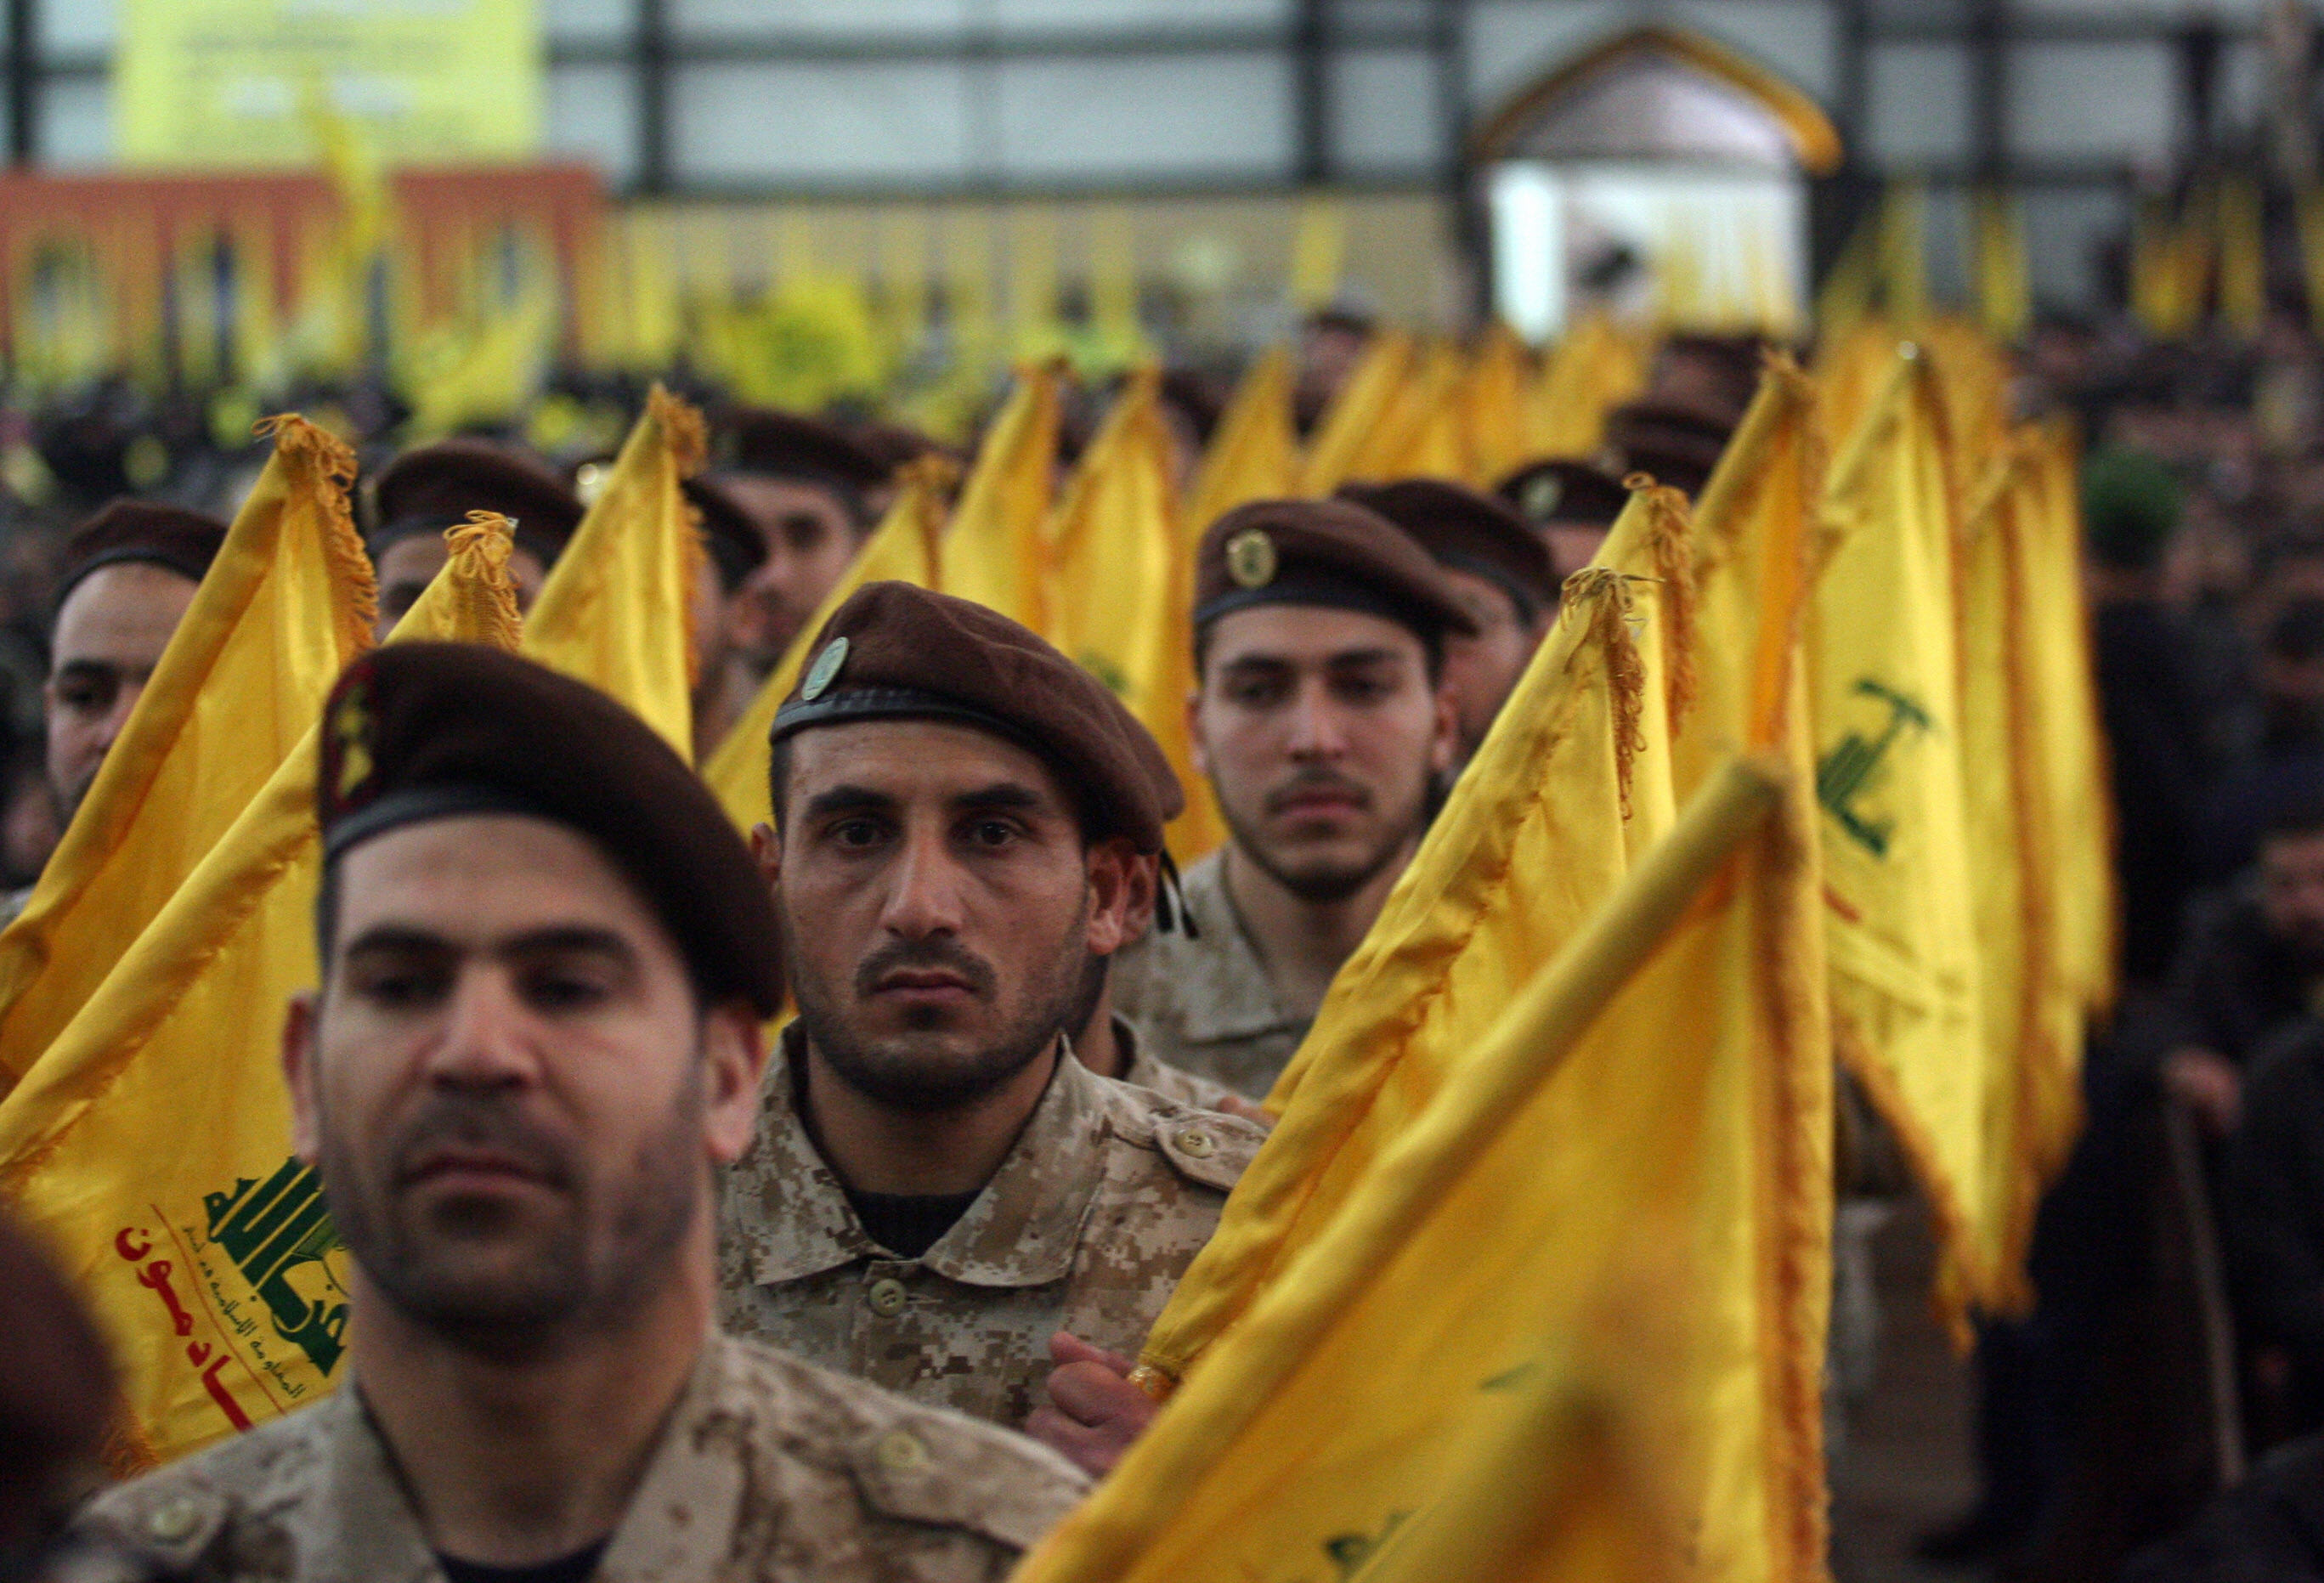 Hezbollah militants (Photo: Mazen All/AFP/Getty Images)